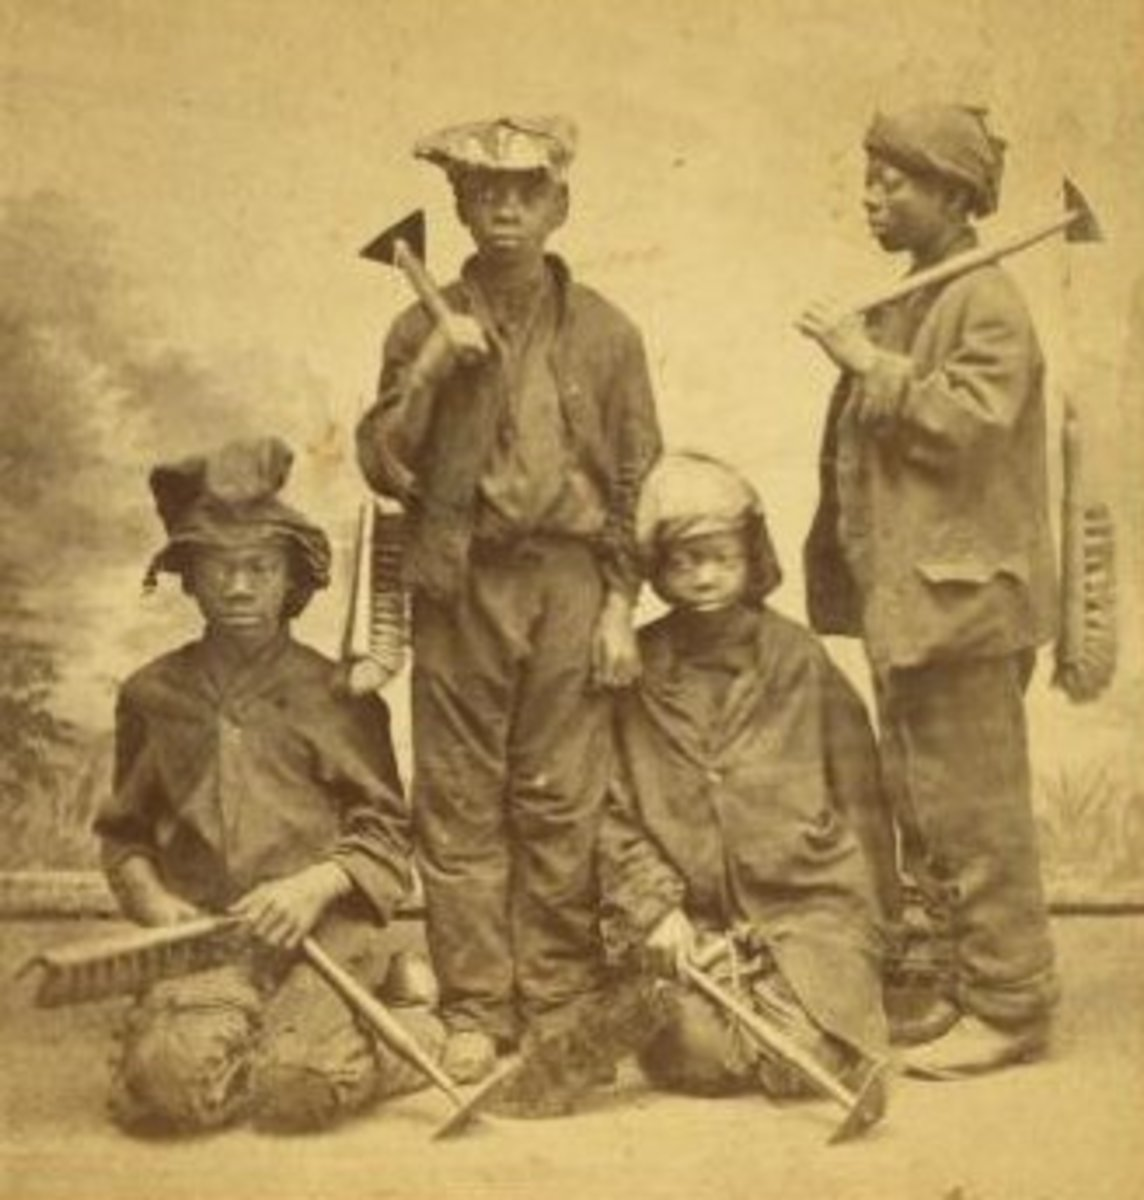 Studio picture of African American child apprentice chimney sweeps by Havens O. Pierre. Taken sometime between 1868 and 1900.